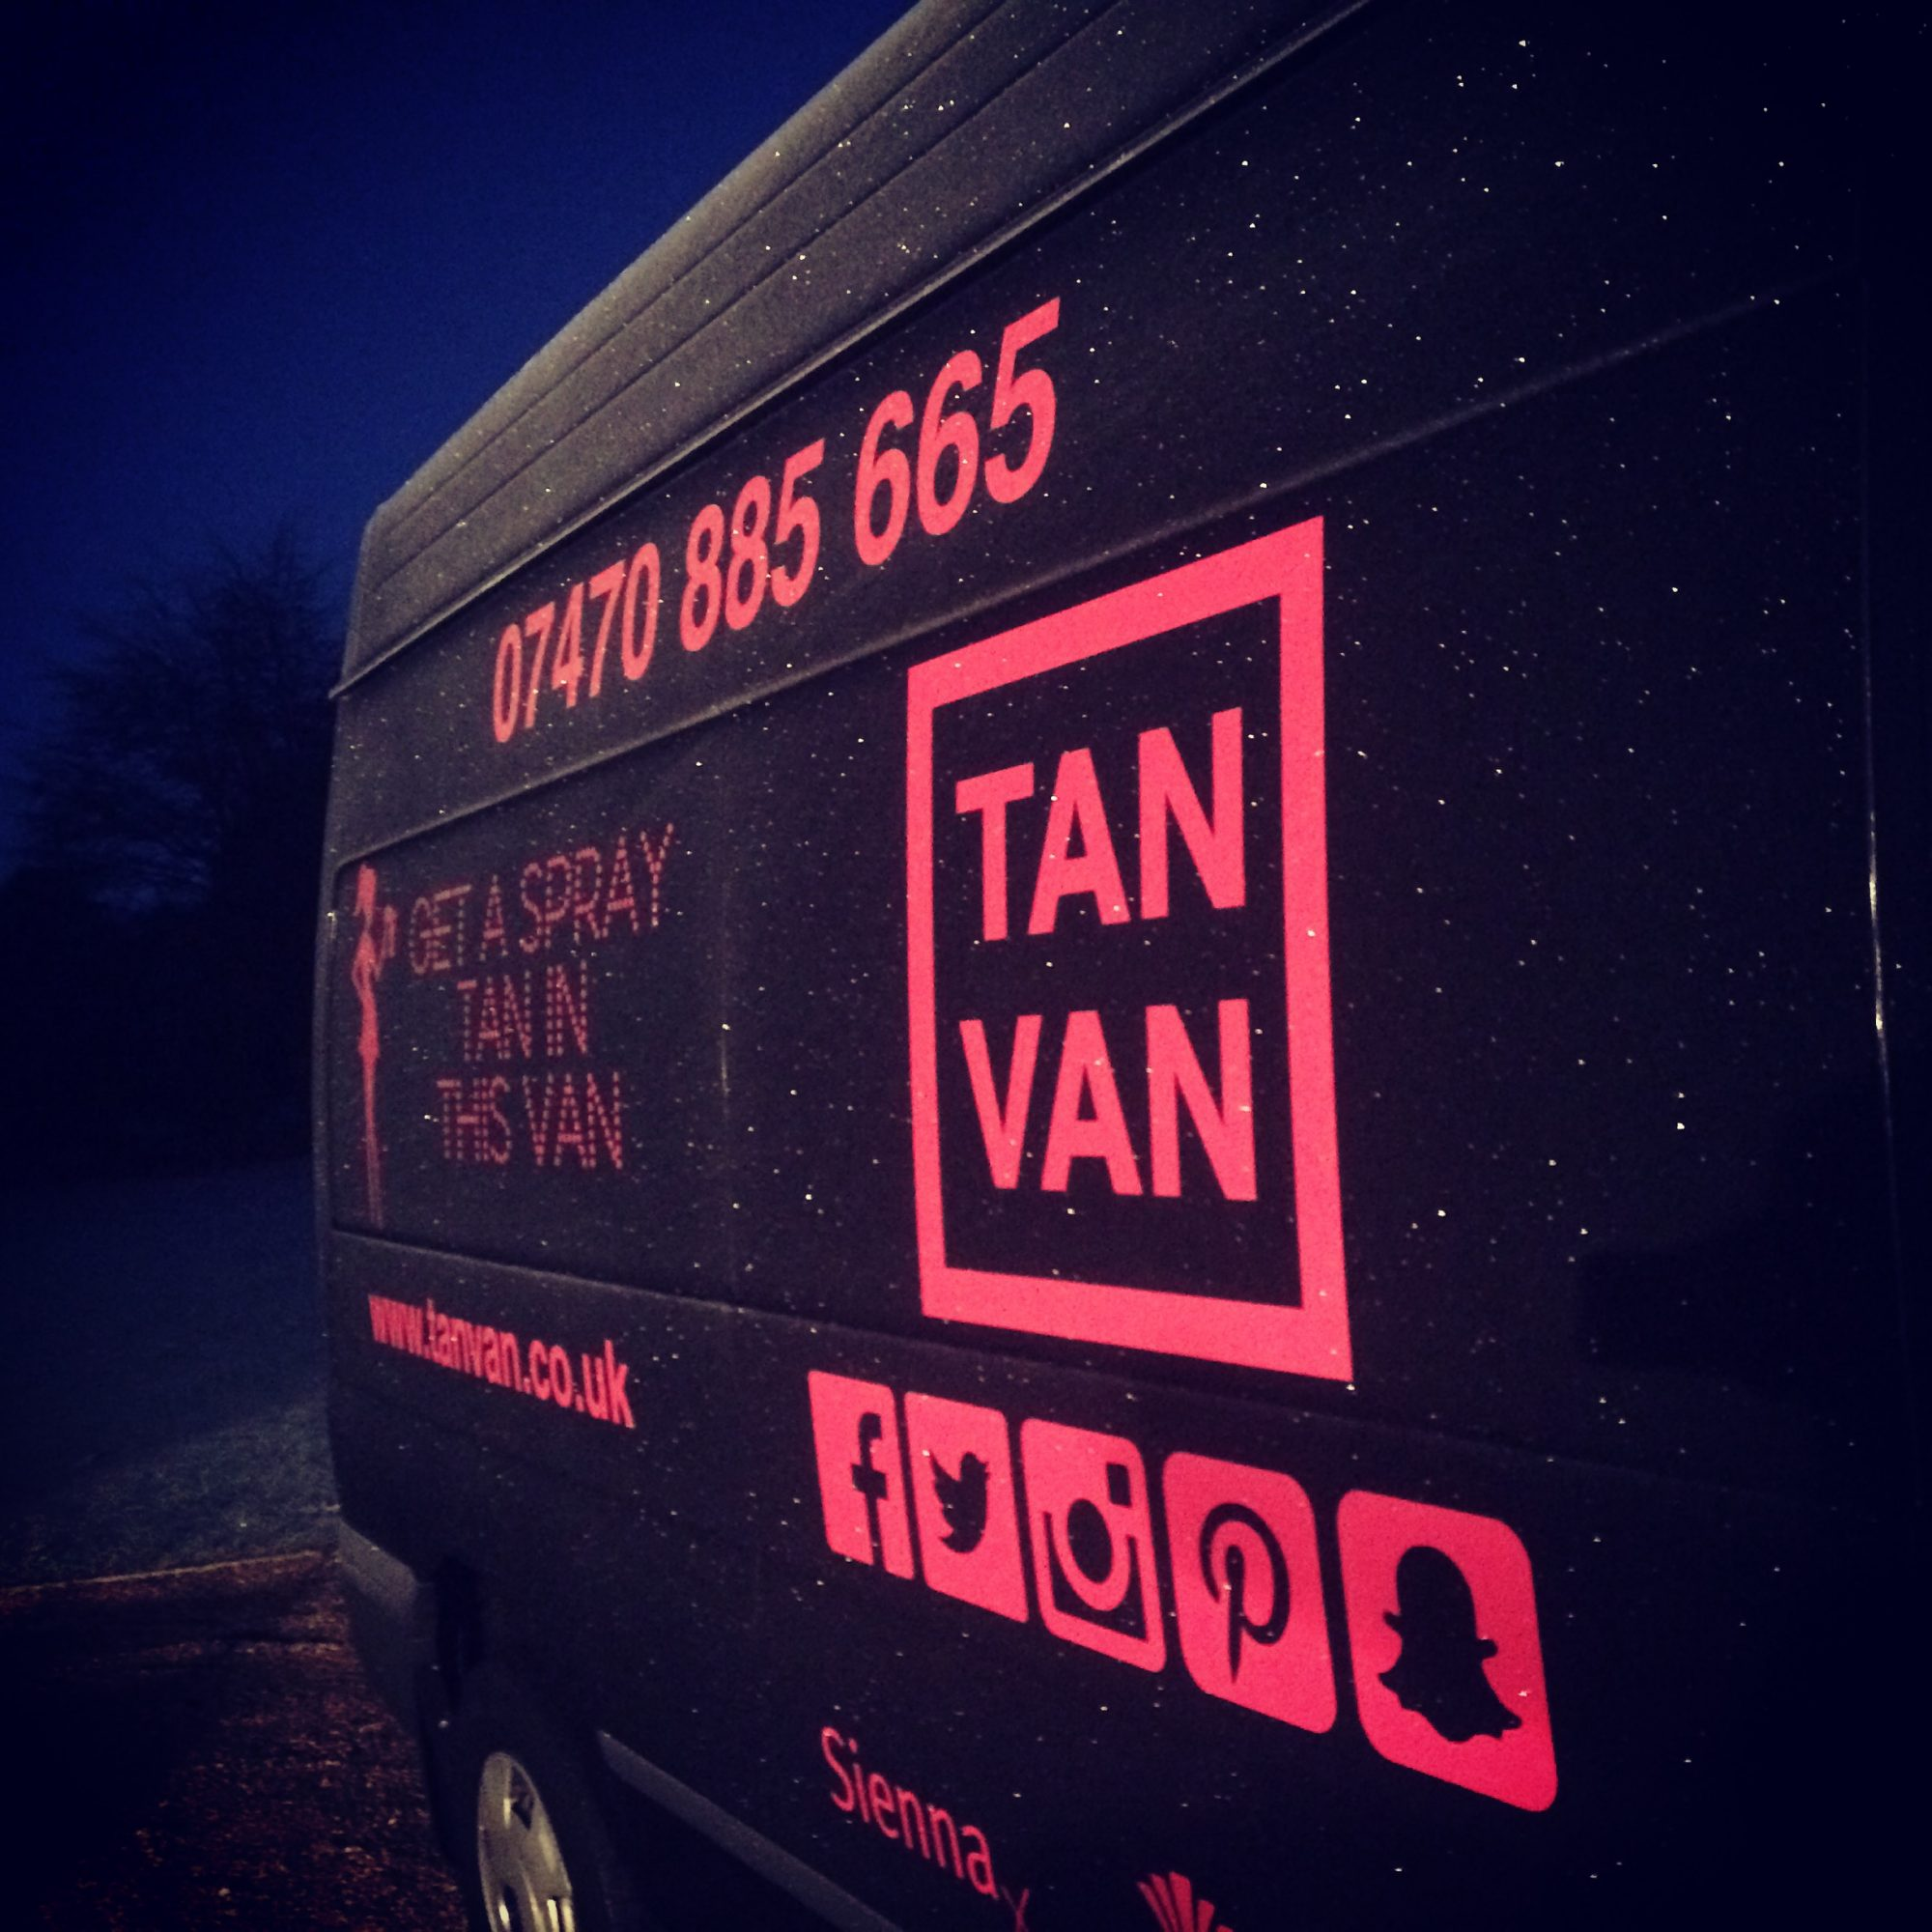 Tan Van - Spray Tanning in a Van